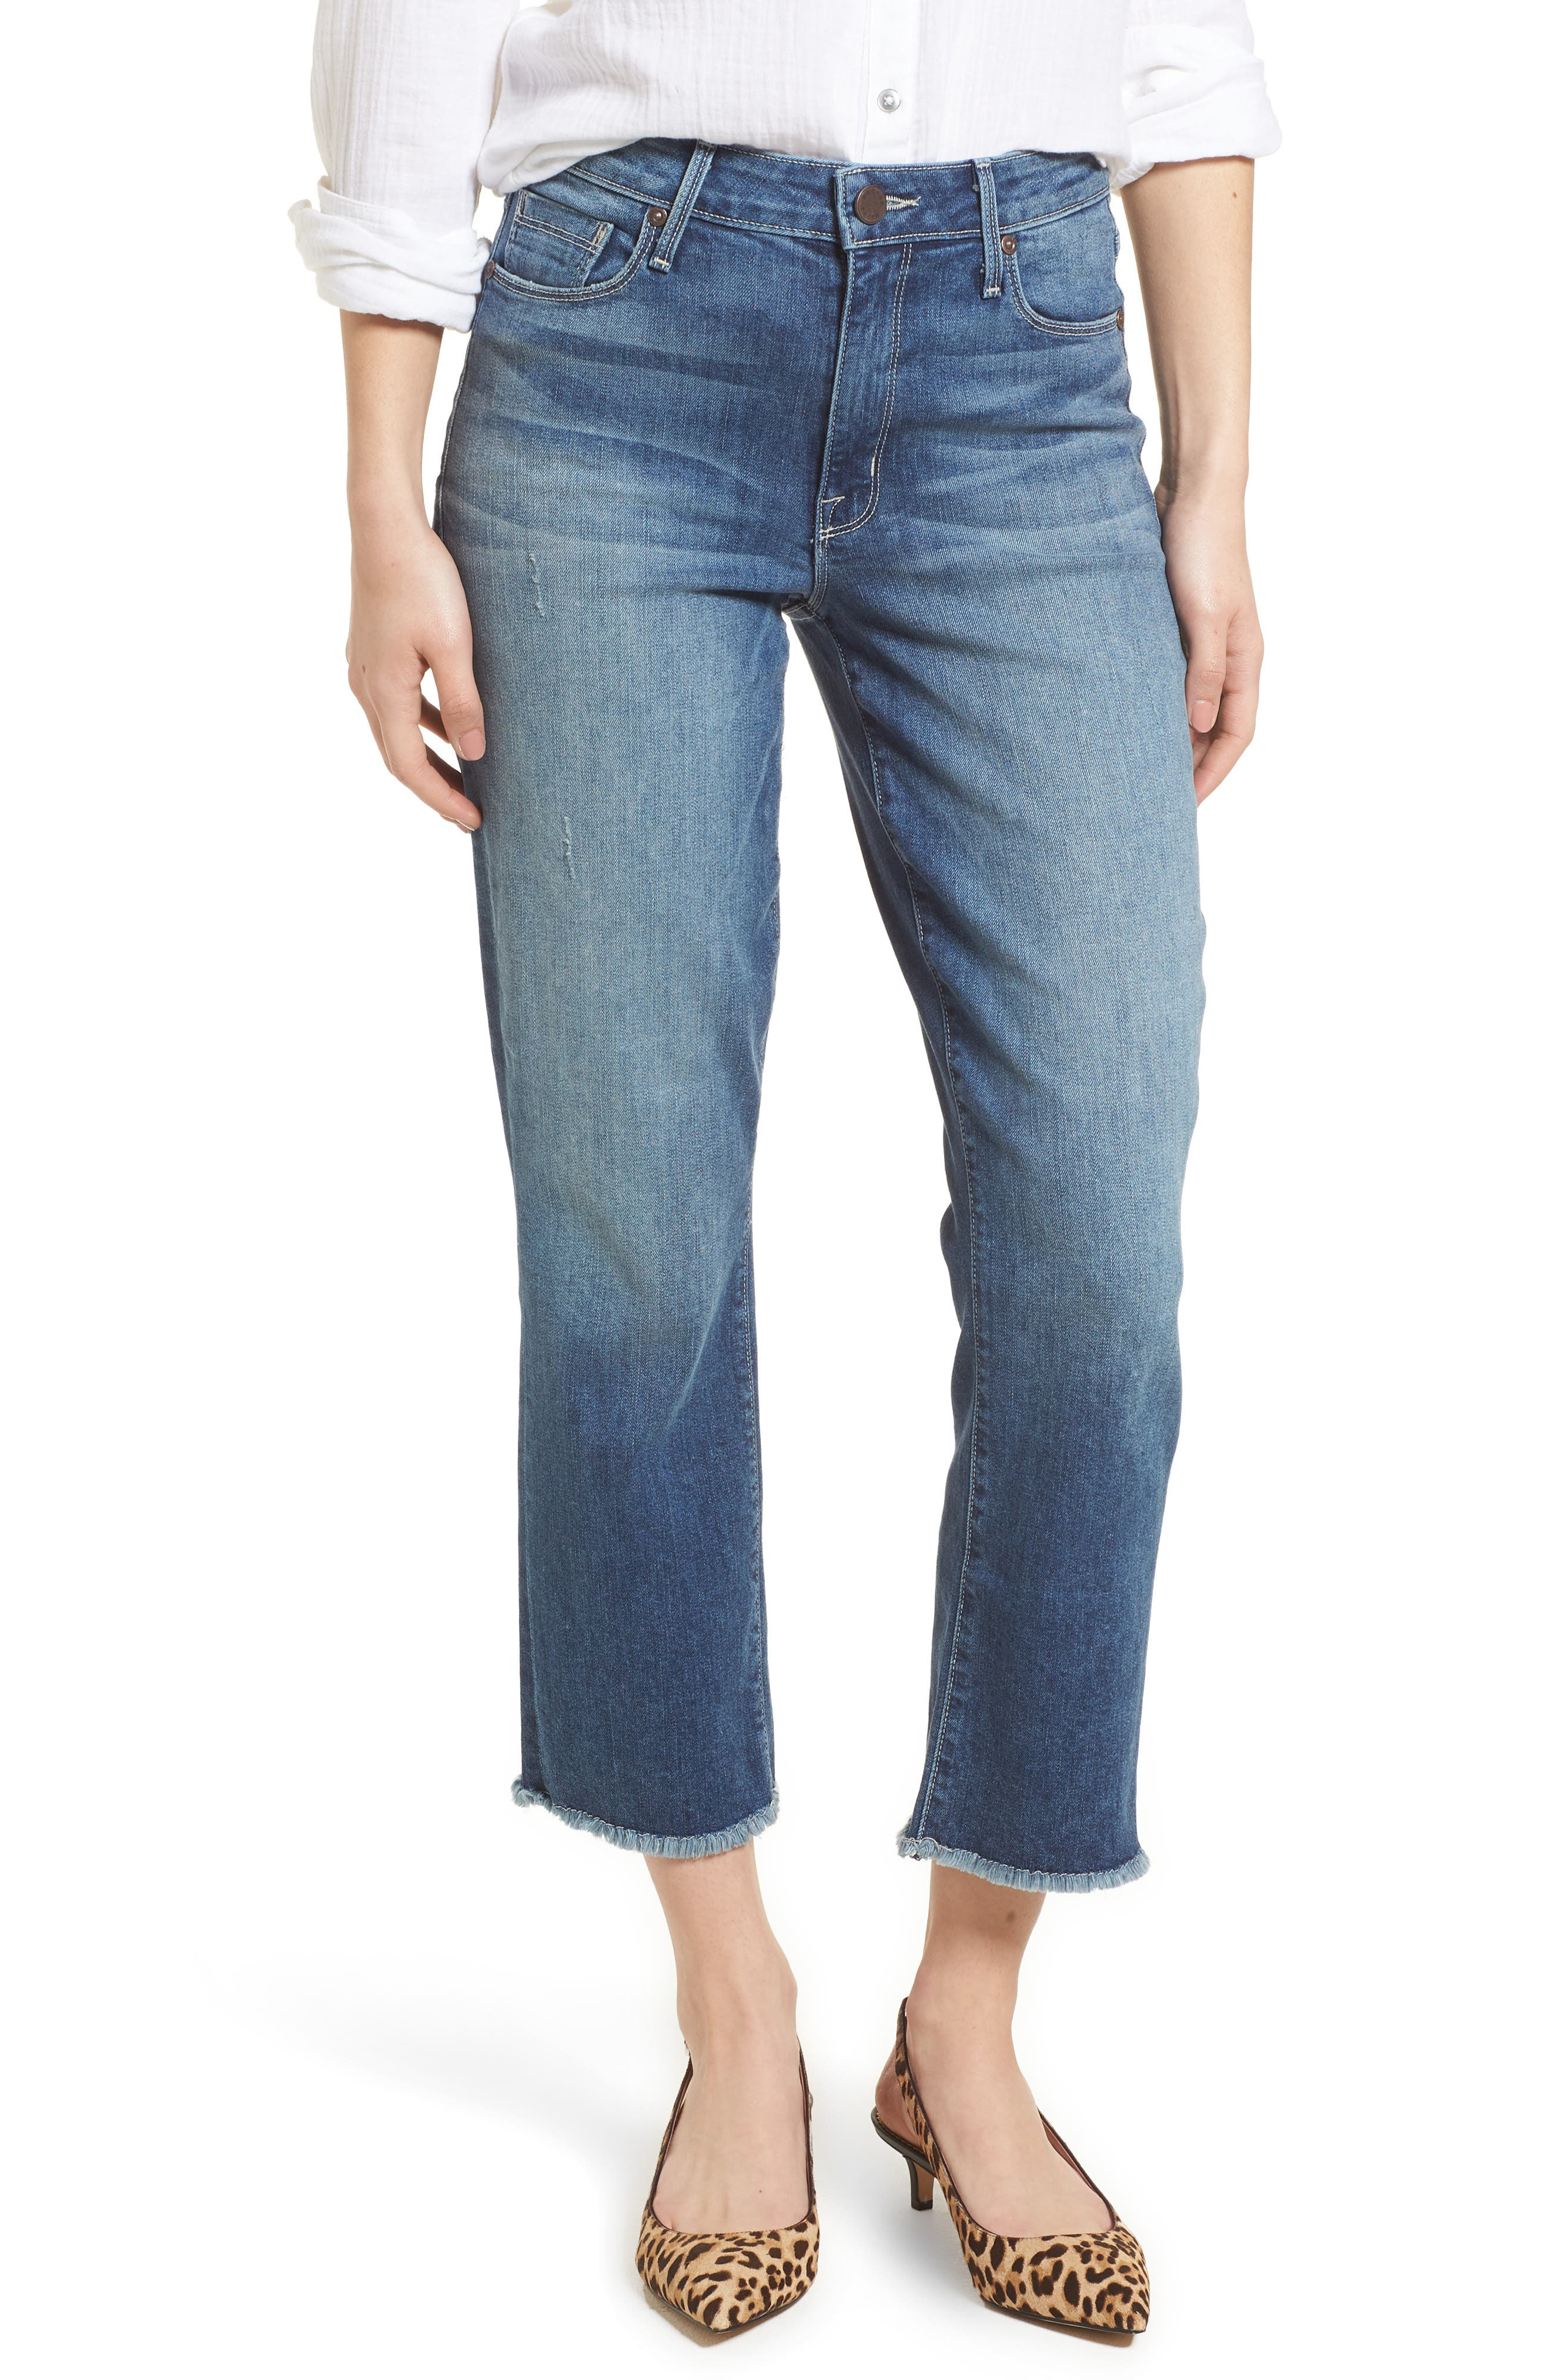 PARKER SMITH PIN-UP STRAIGHT CROP JEANS